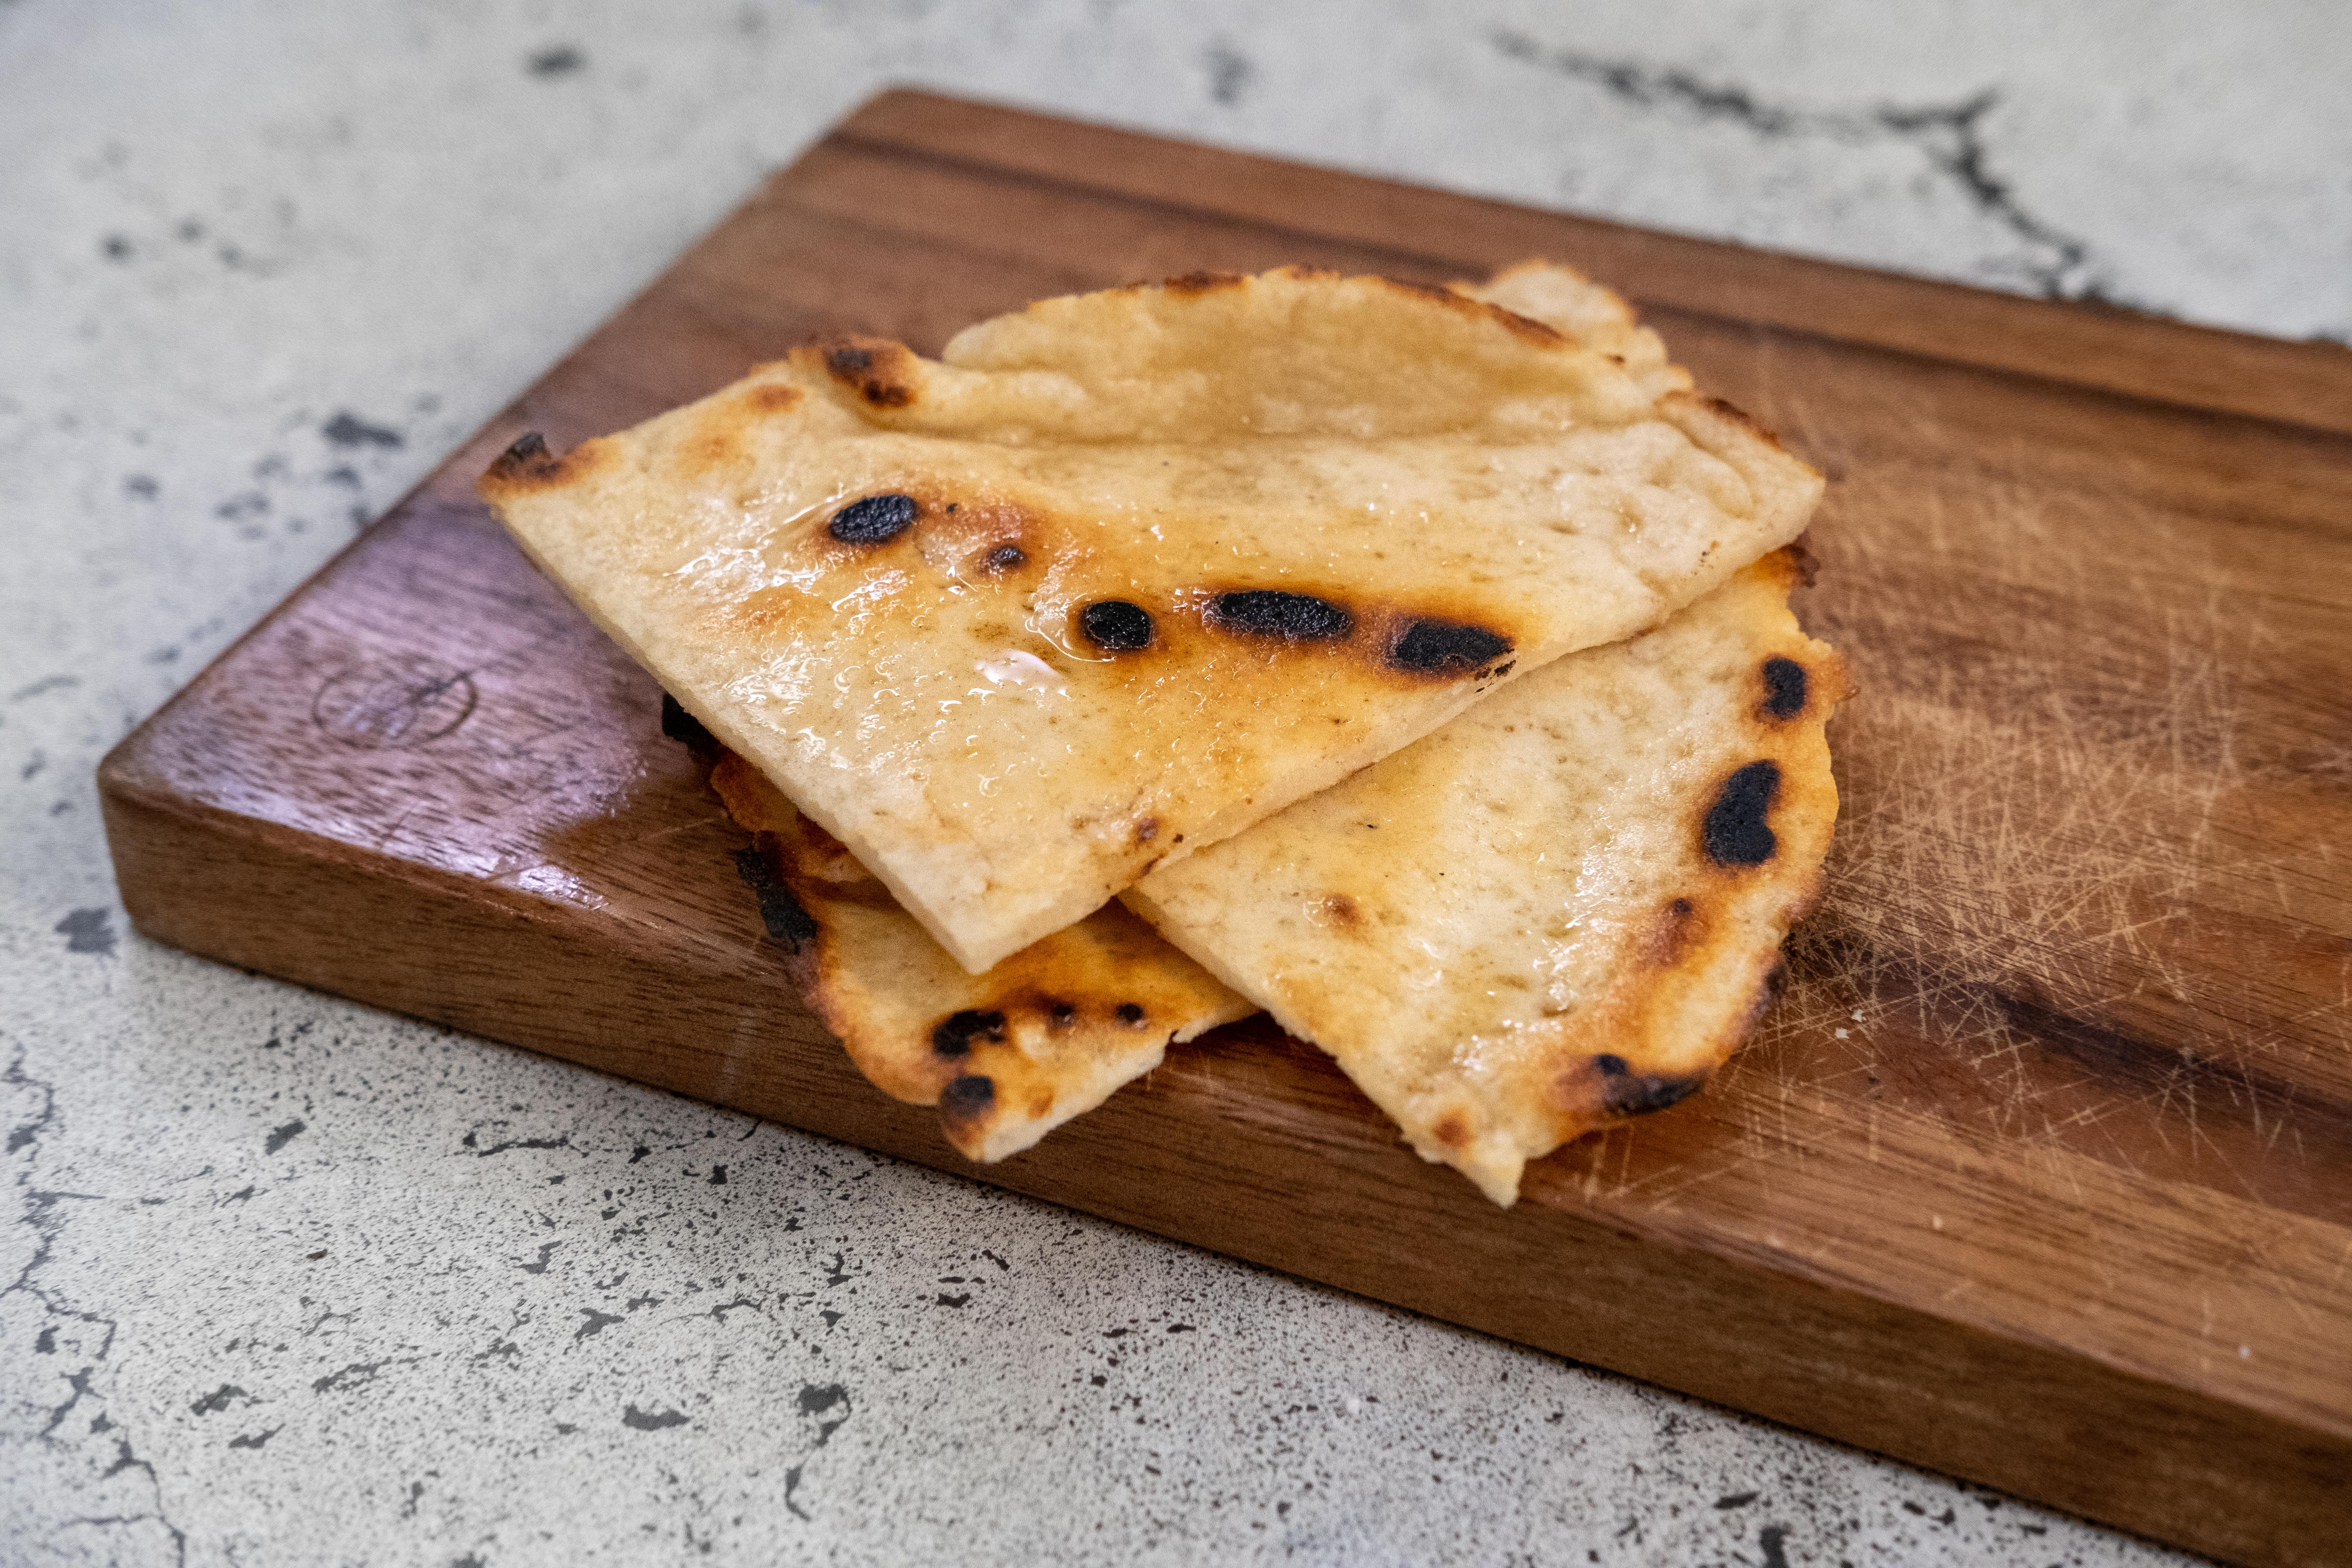 Mark's Gluten Free Naan Bread